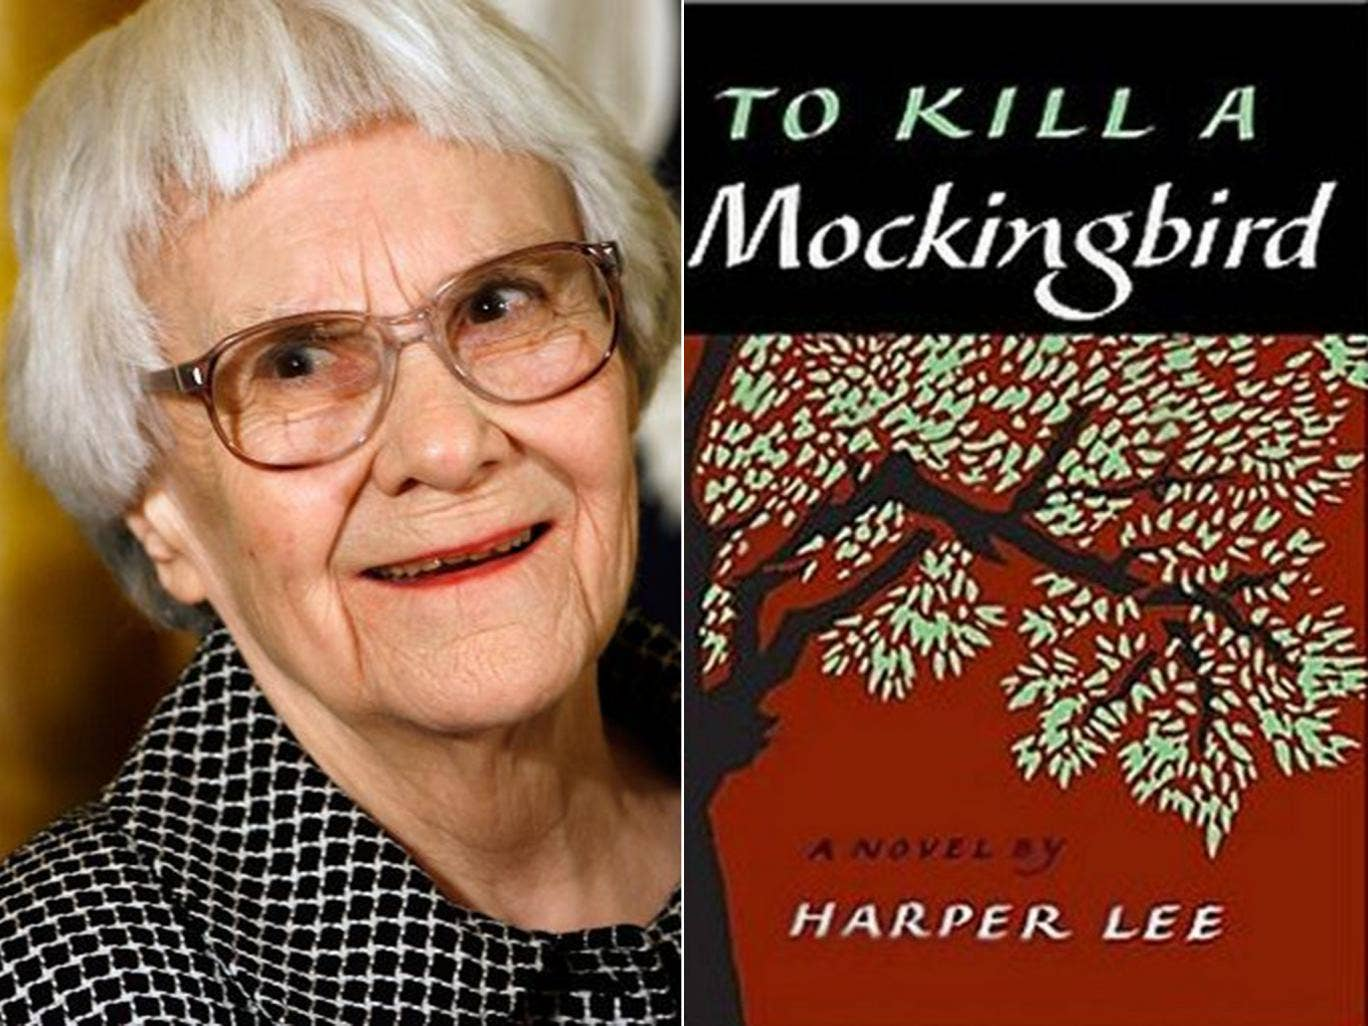 an analysis of harper lees story to kill a mockingbird The future of the forthcoming broadway adaptation of harper lee's to kill a mockingbird to her enduring 1960 masterpiece in exchange for $100,000 and a promise that the play would remain true to the original story is a different take on 'mockingbird' than harper lee's.